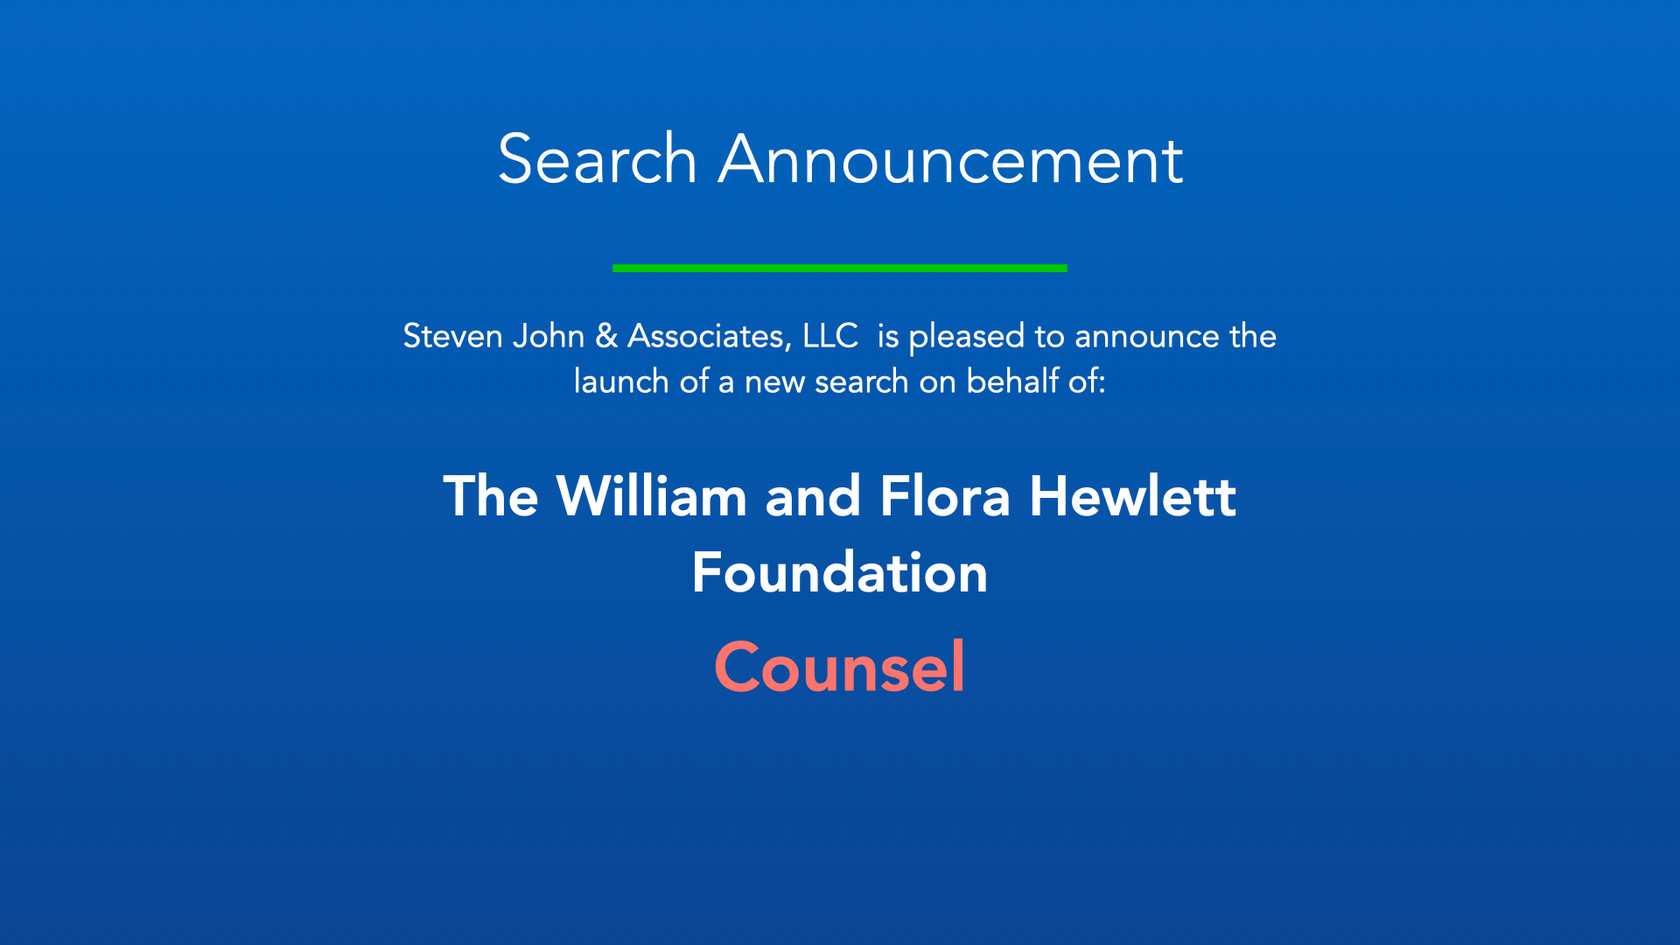 Search Announcement_Hewlett Foundation_C